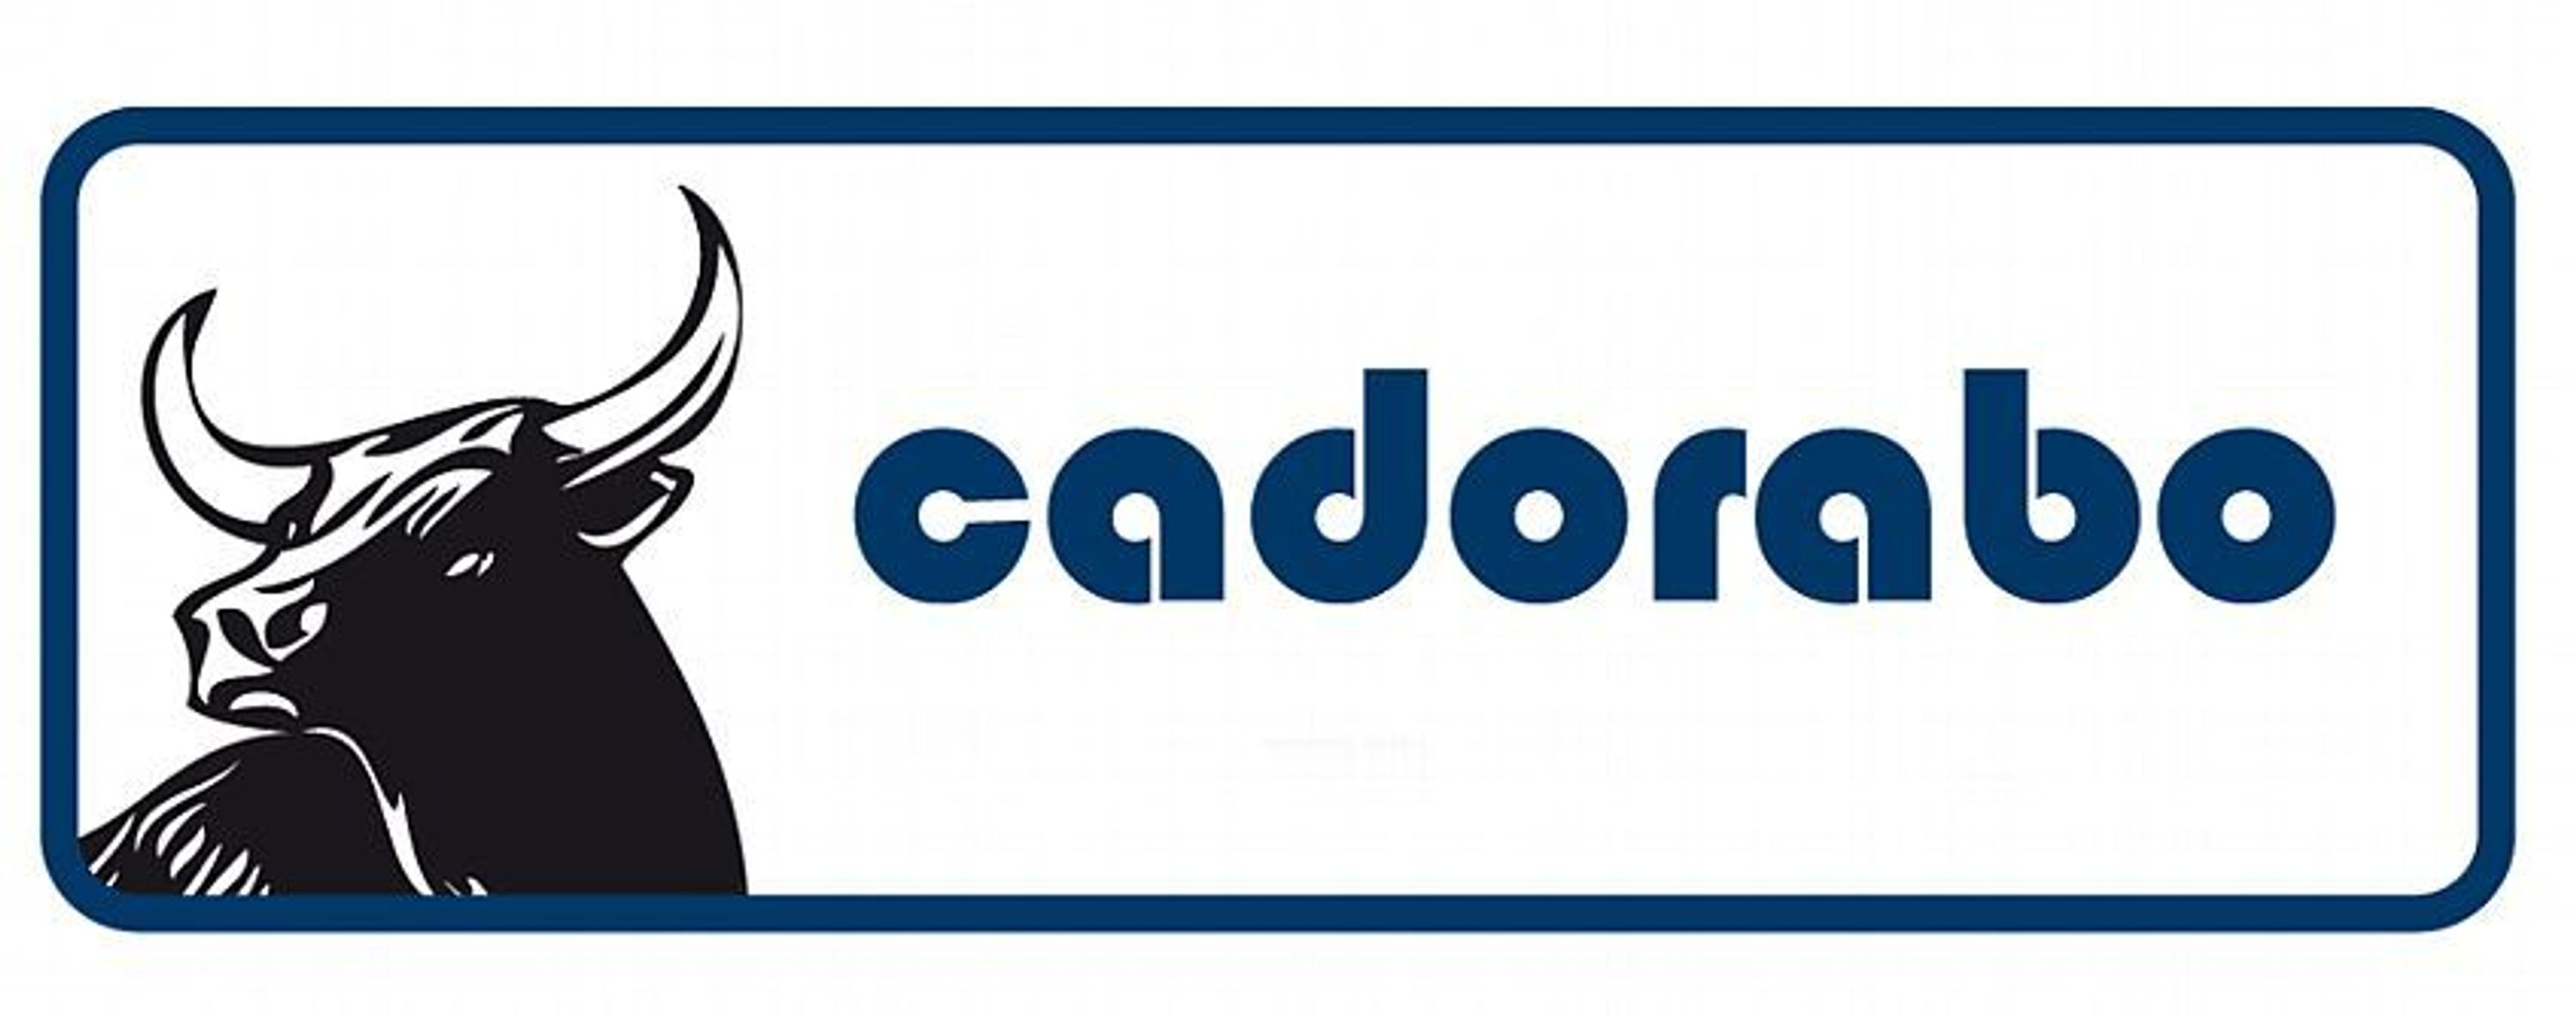 Cadorabo-Shop